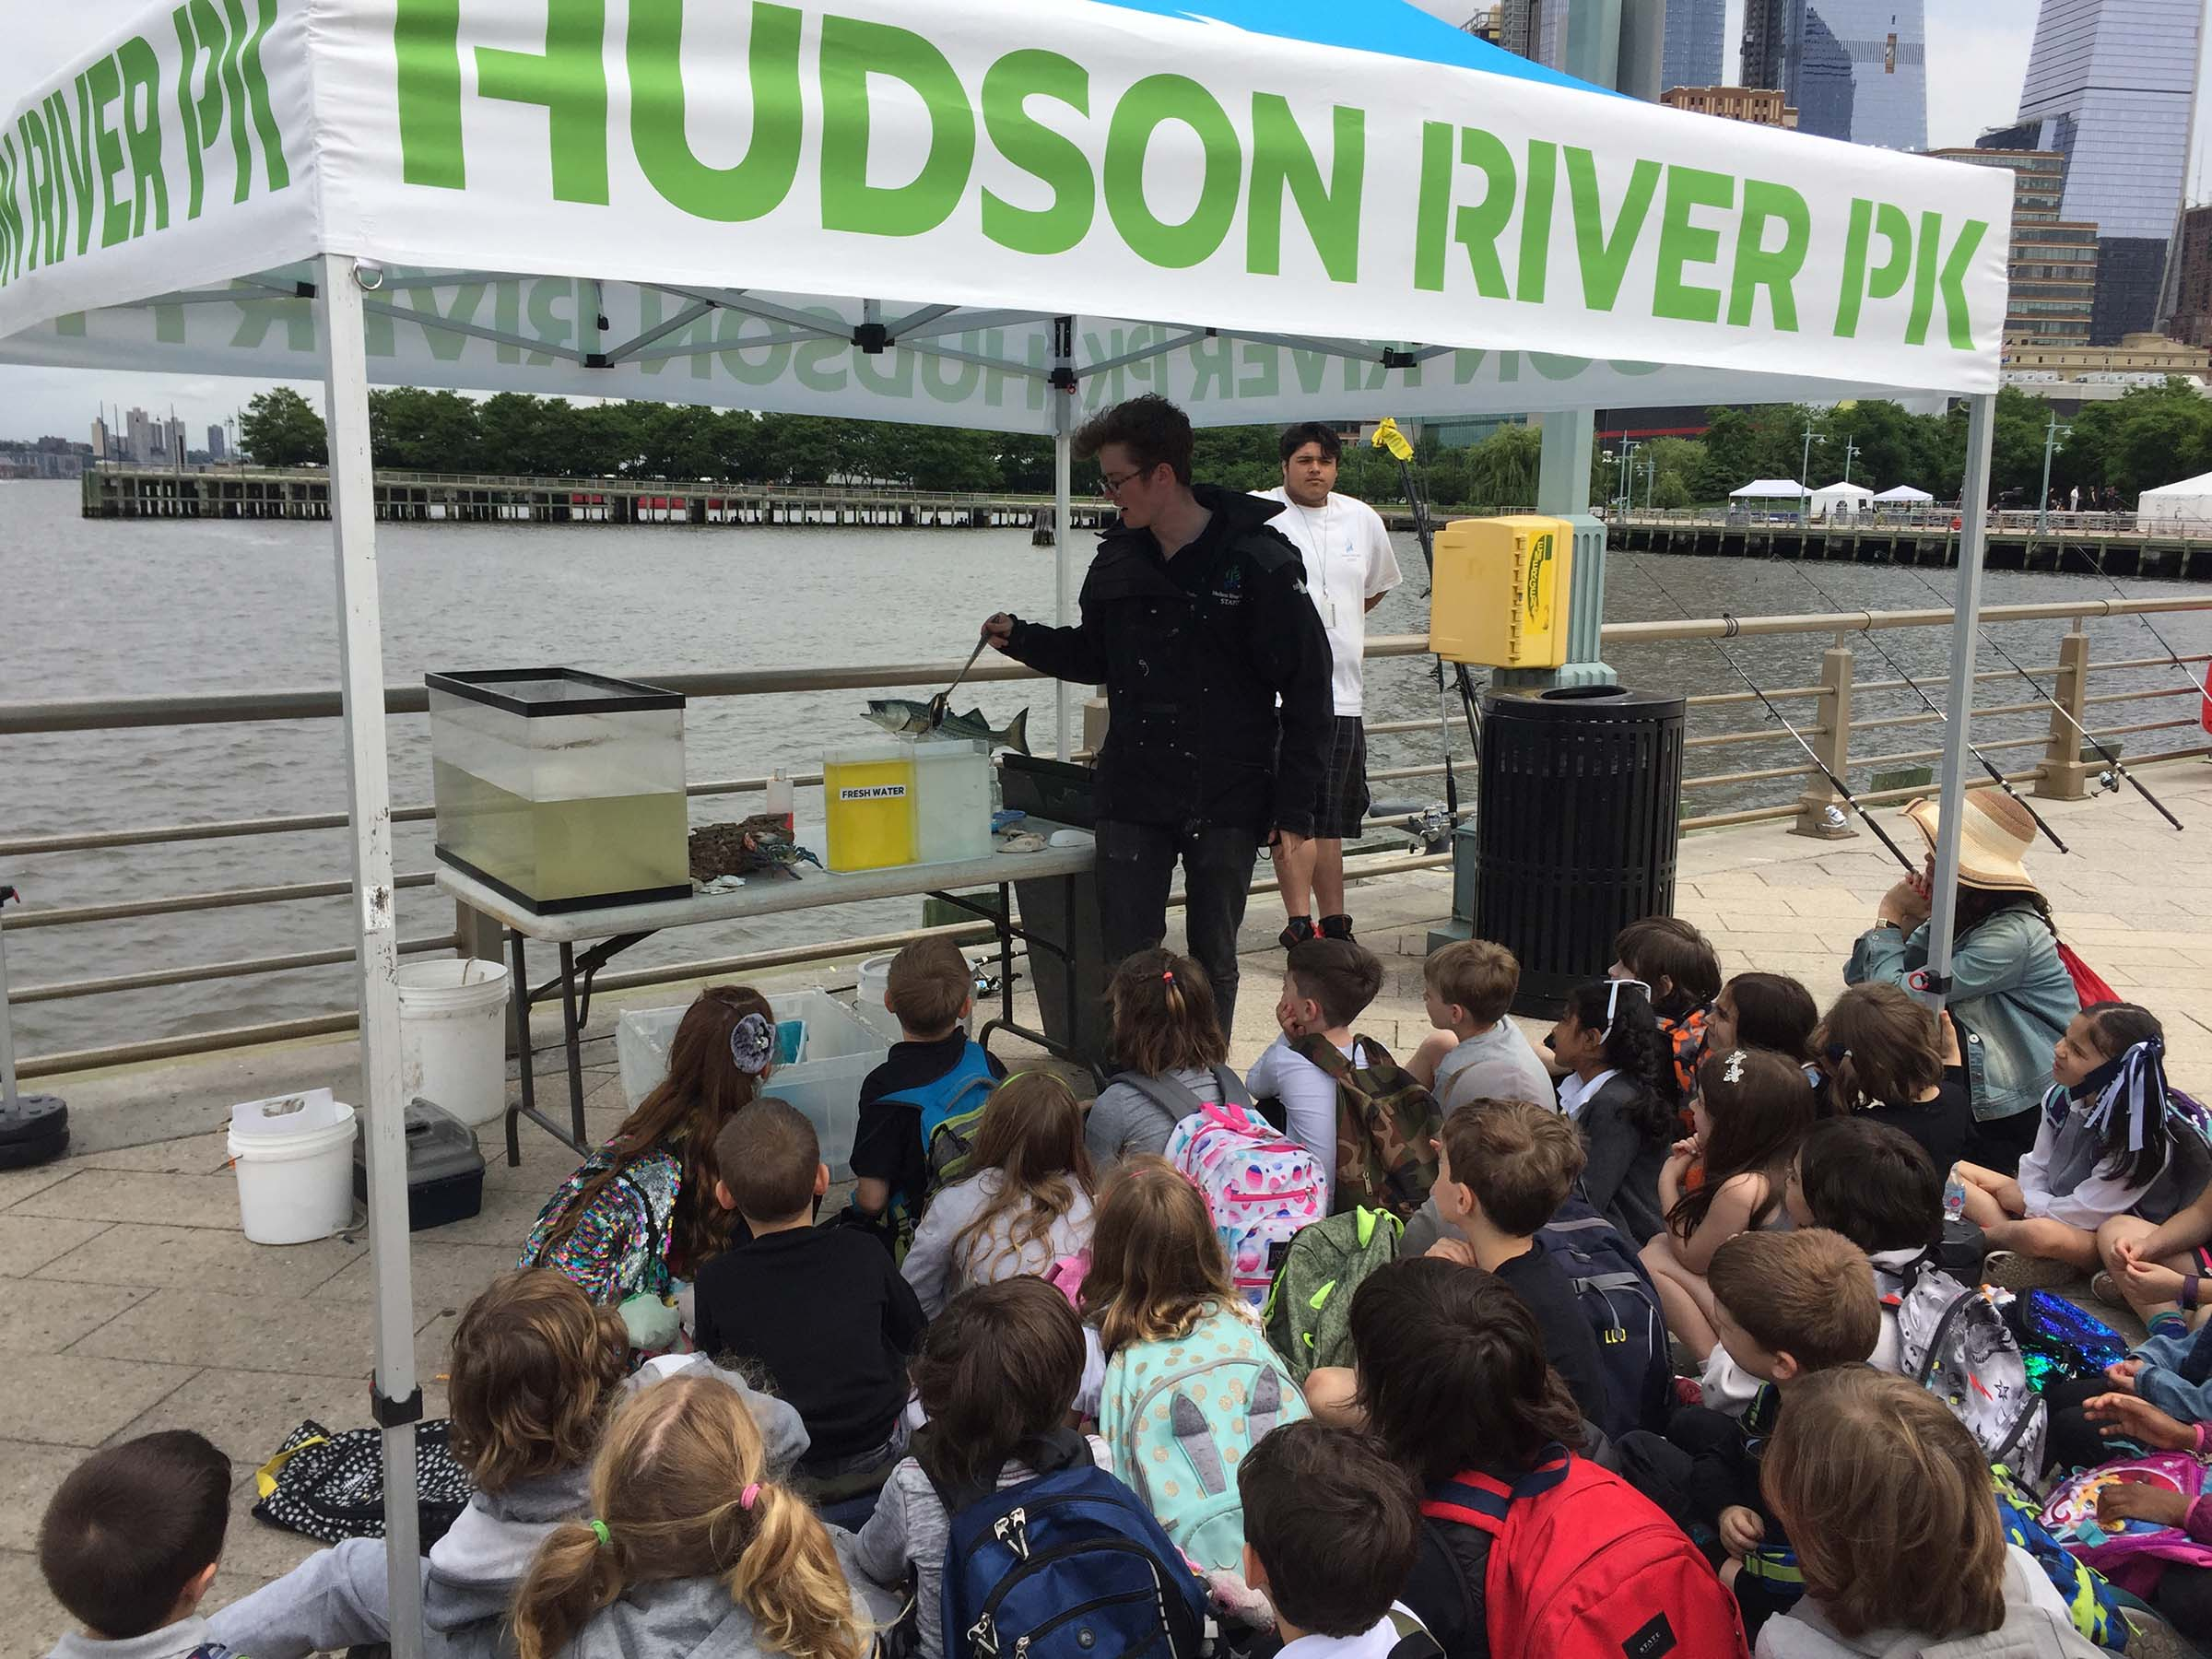 A Park educator teaches students about fish in the Hudson River